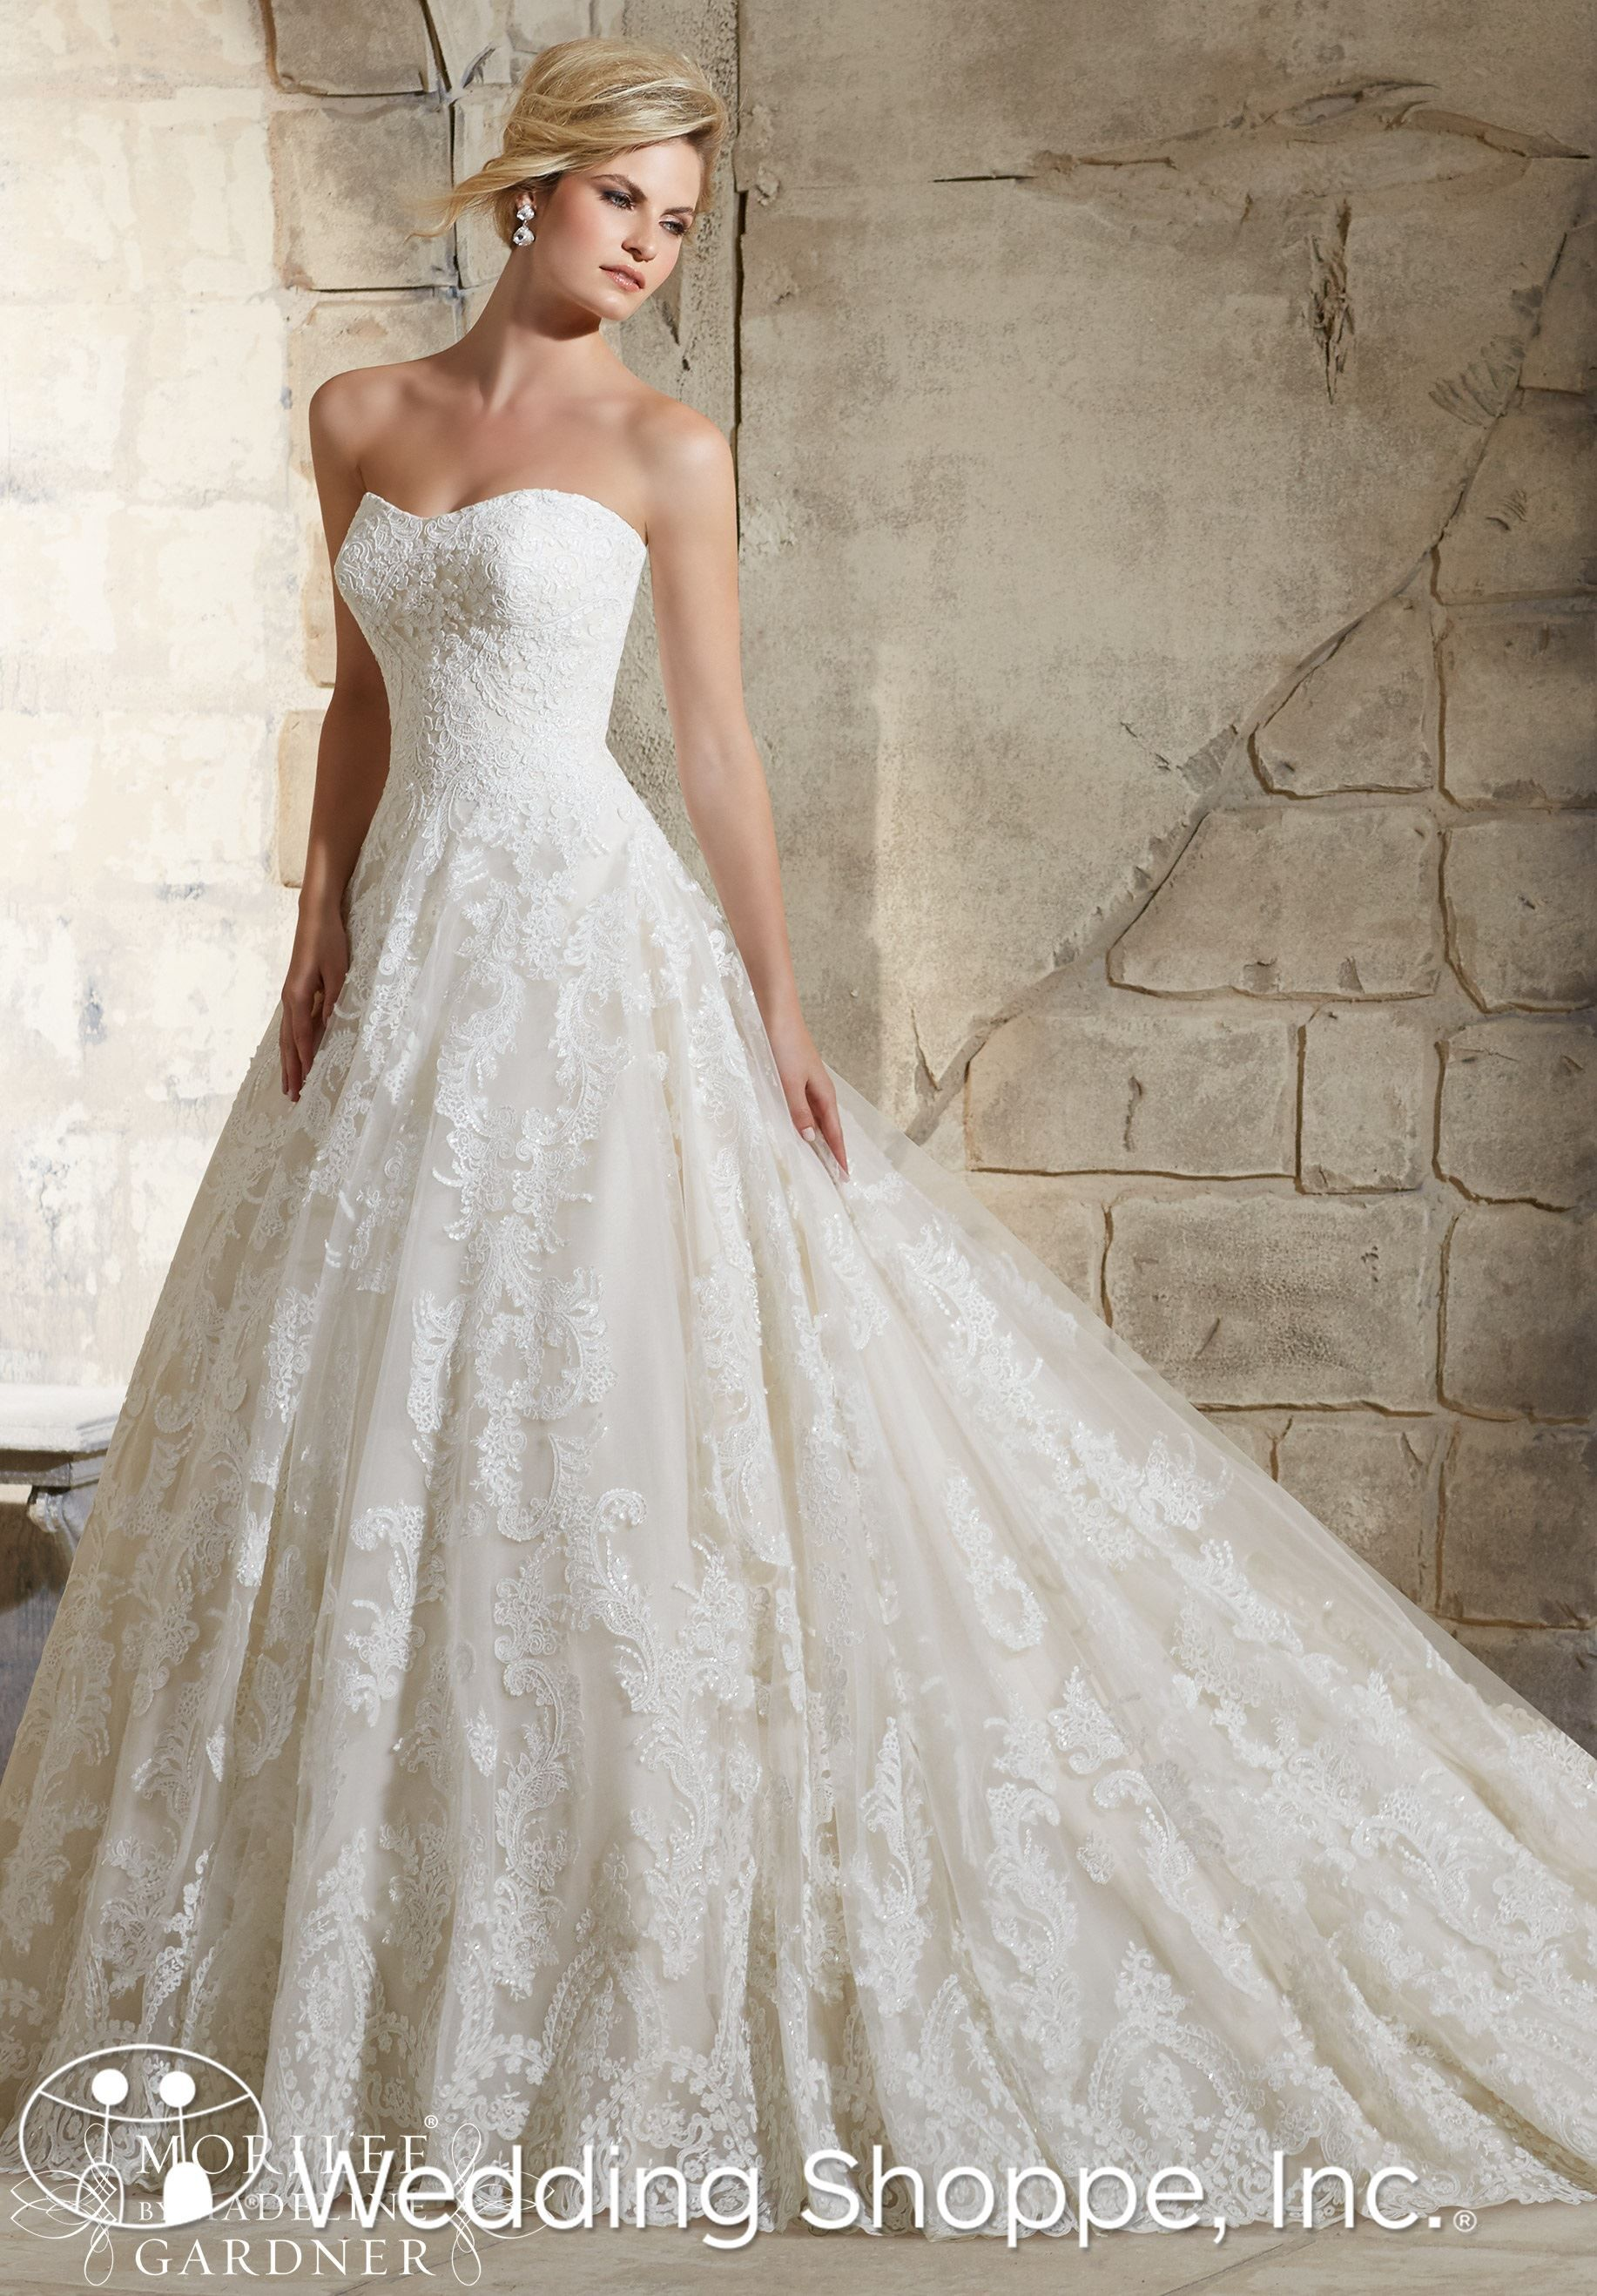 mori lee 8108, OFF 78%,Buy!